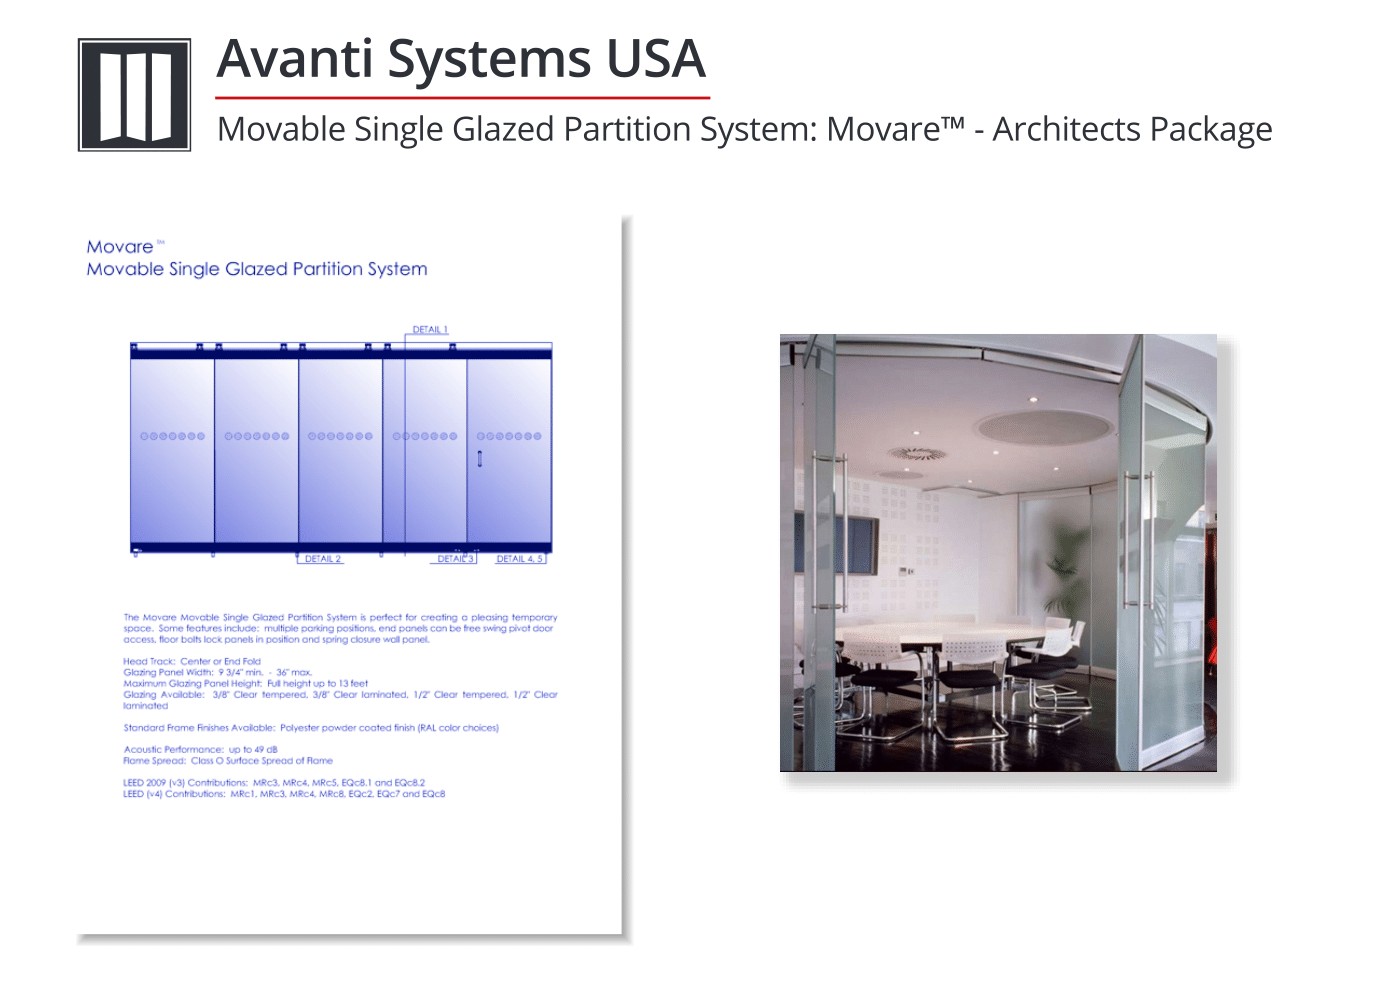 Avanti-Systems-USA-Movable-Single-Glazed-Fire-Rated-Partition-CADdrawing.png